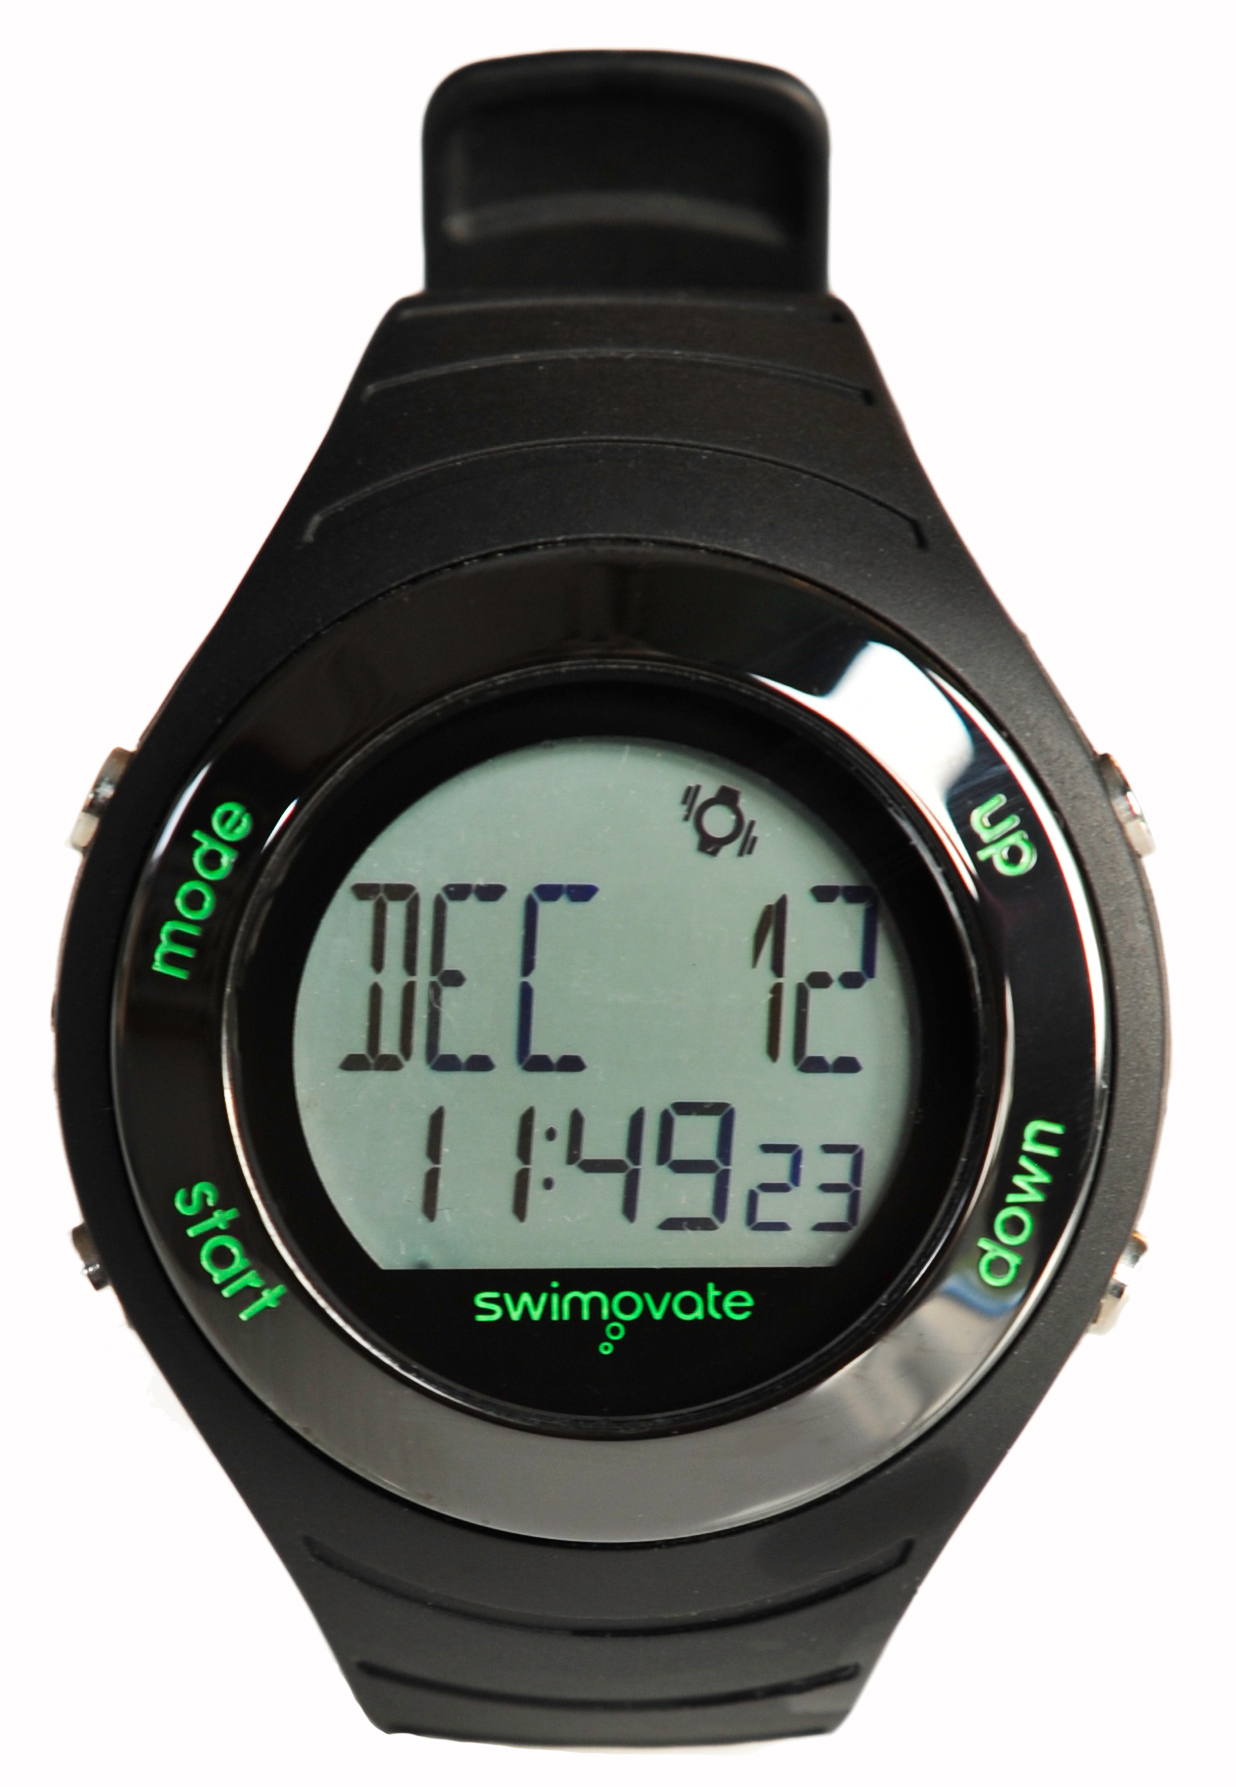 Swimovate Pool Mate Live Svømmeur | Sports watches